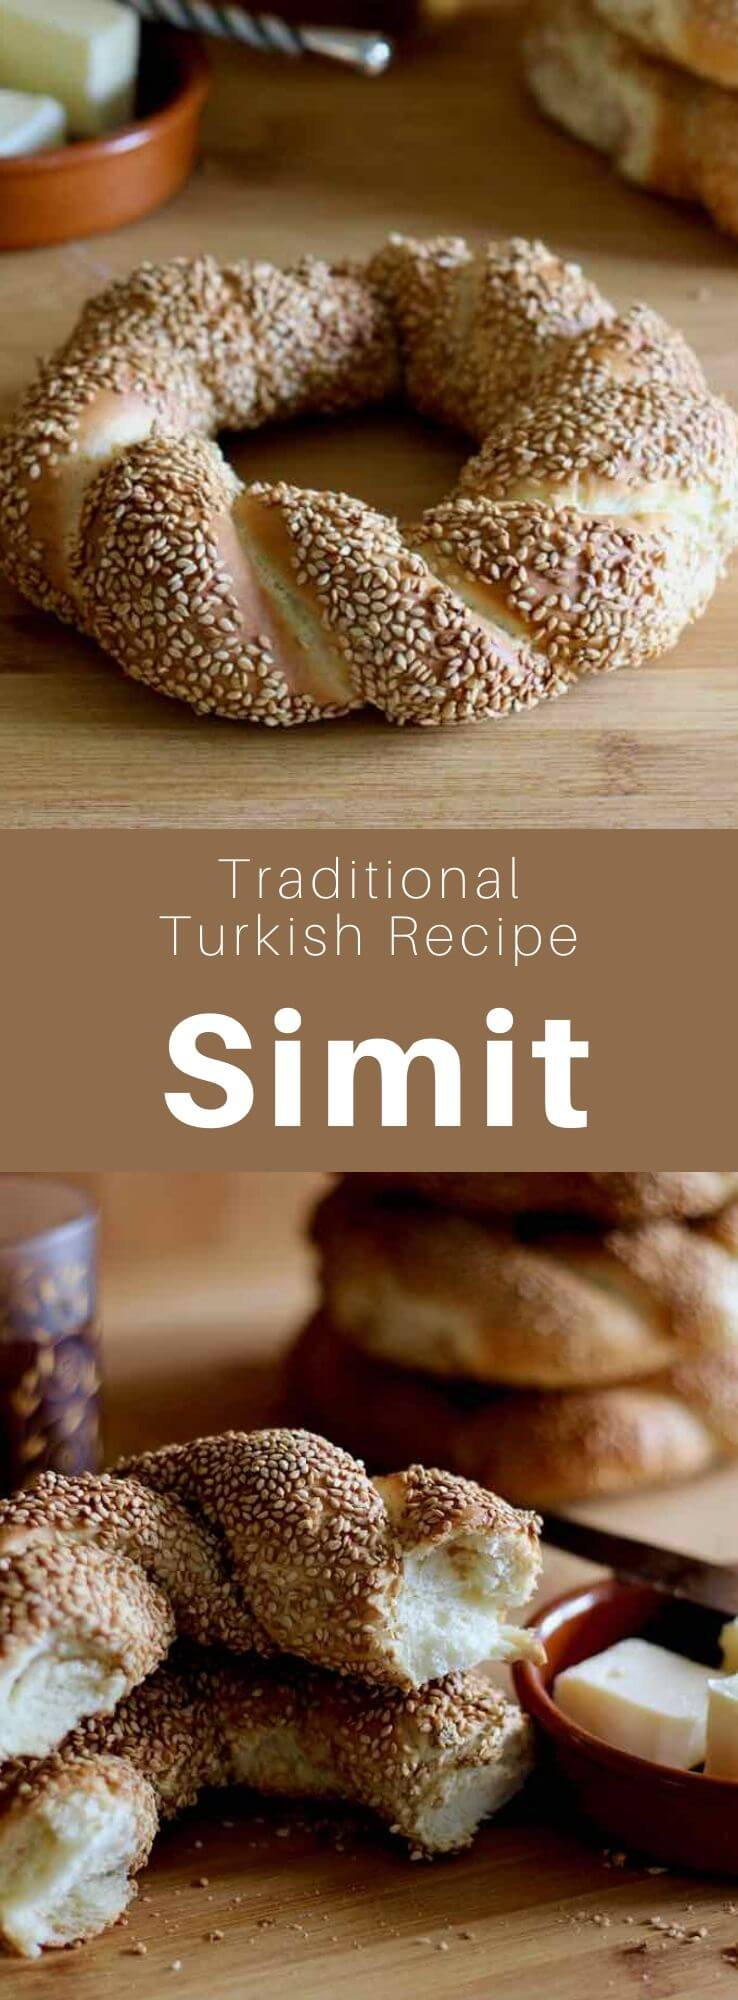 Simit is a Turkish ring-shaped bread made with a thick crust of sesame seeds, also called gevrek or koulouri, and nicknamed Turkish pretzel. #Turkey #Turkish #TurkishRecipe #TurkishFood #TurkishCuisine #WorldCuisine #196flavors